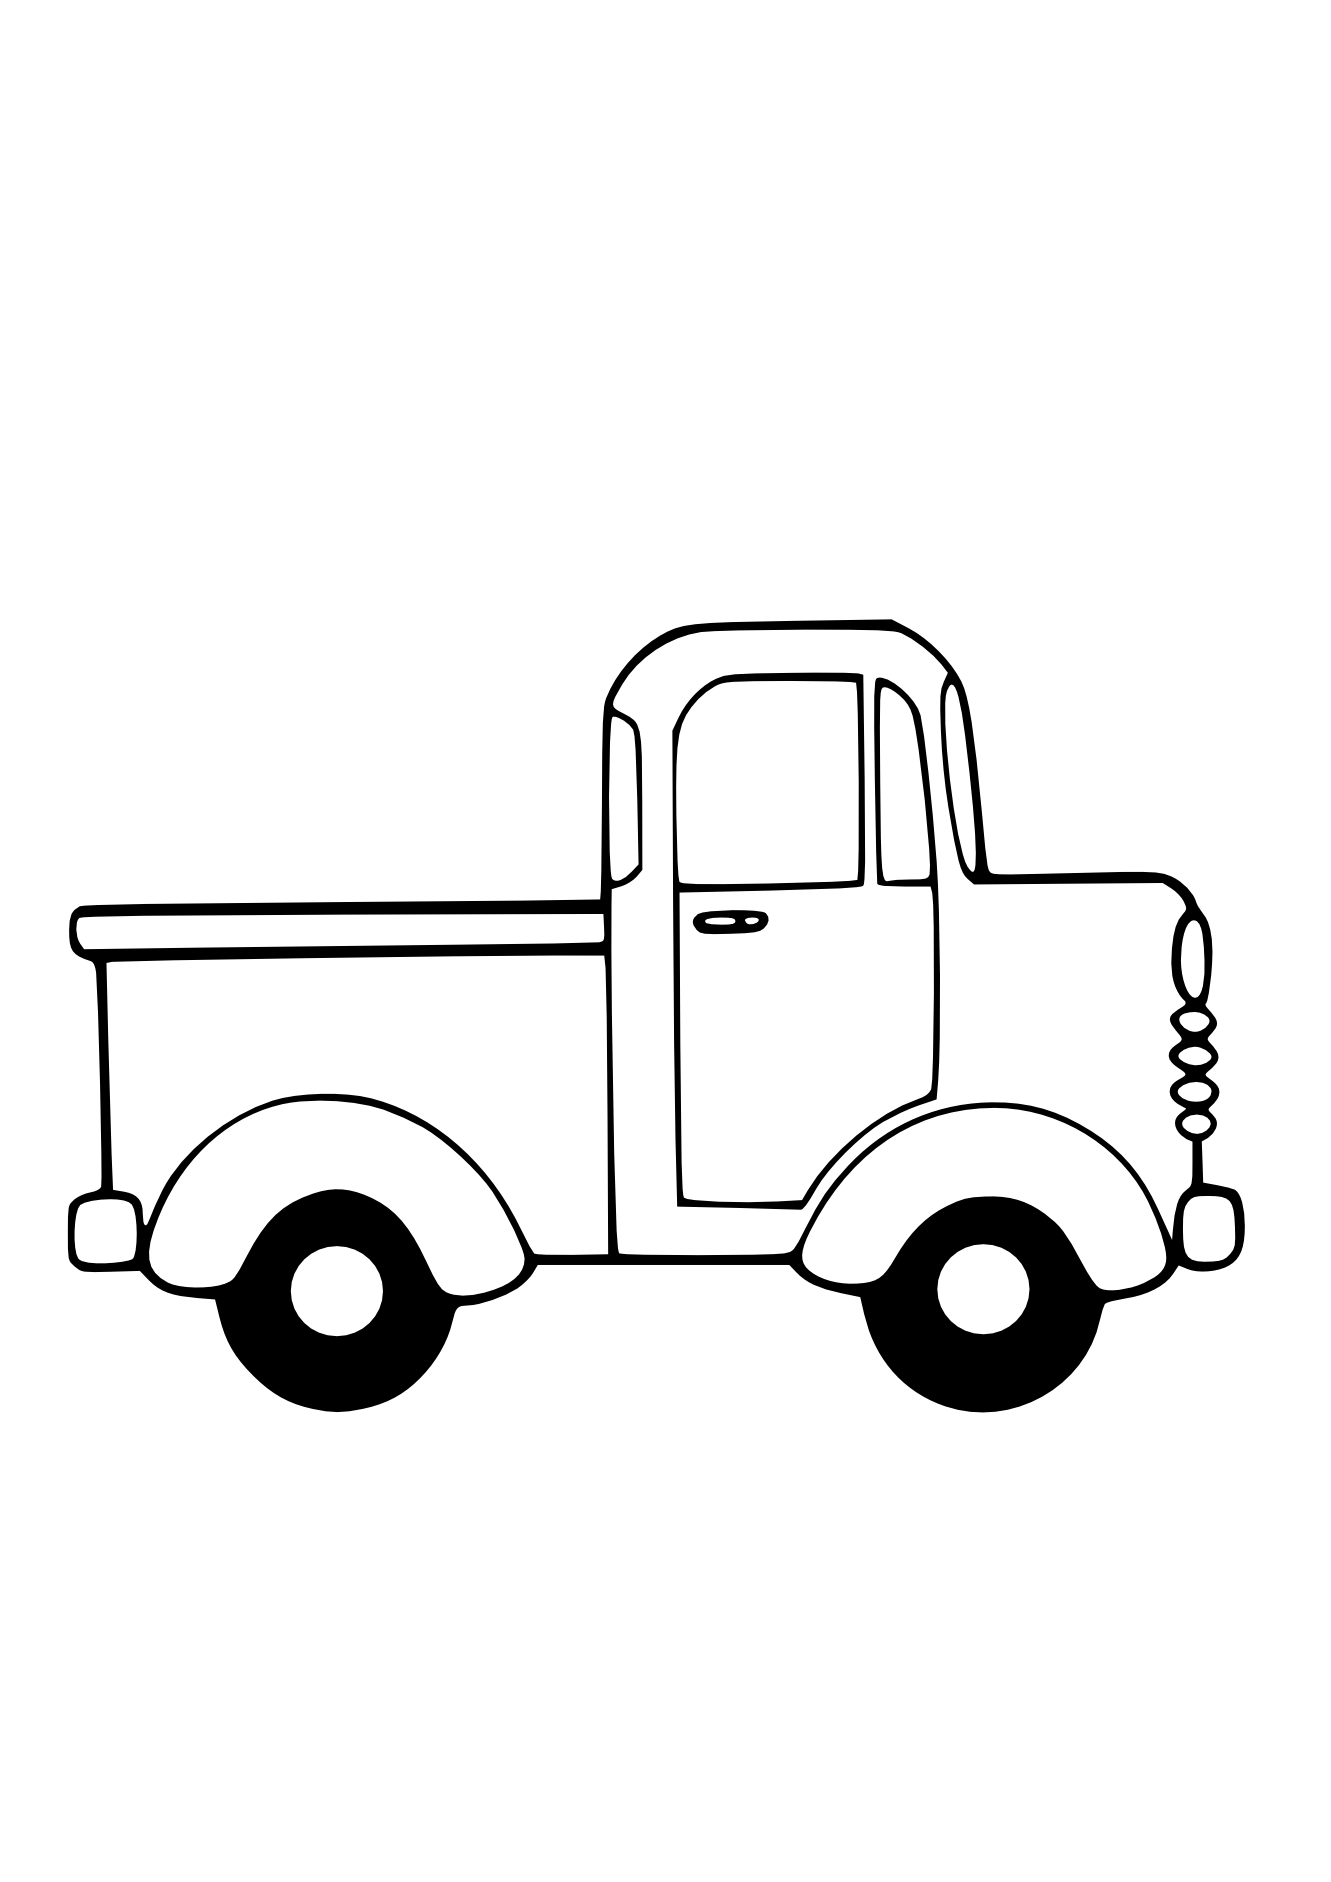 Clip Art Clip Art Truck truck outline clipart kid fireplace black and white panda free clipart